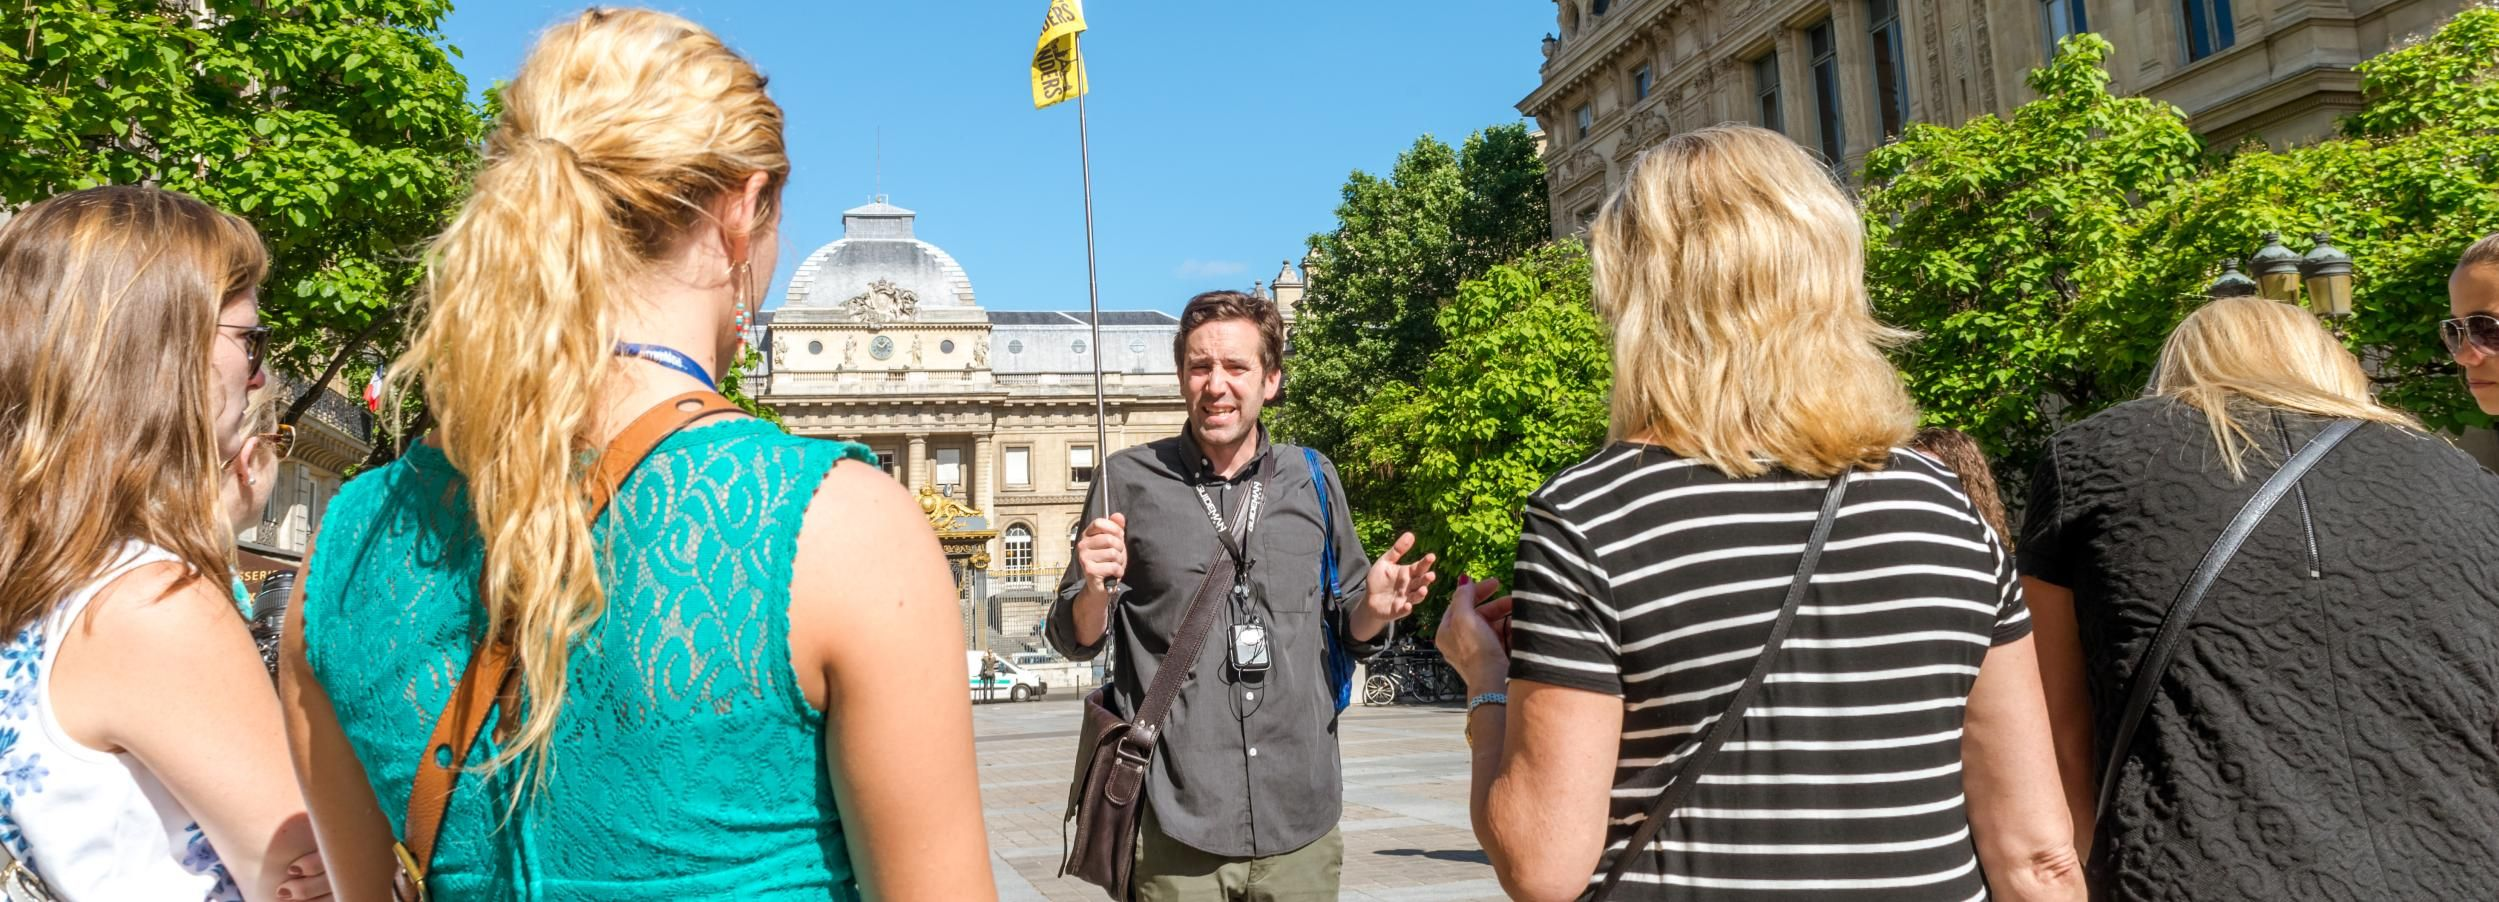 Paris: Notre Dame Island Historical and Medieval Guided Tour